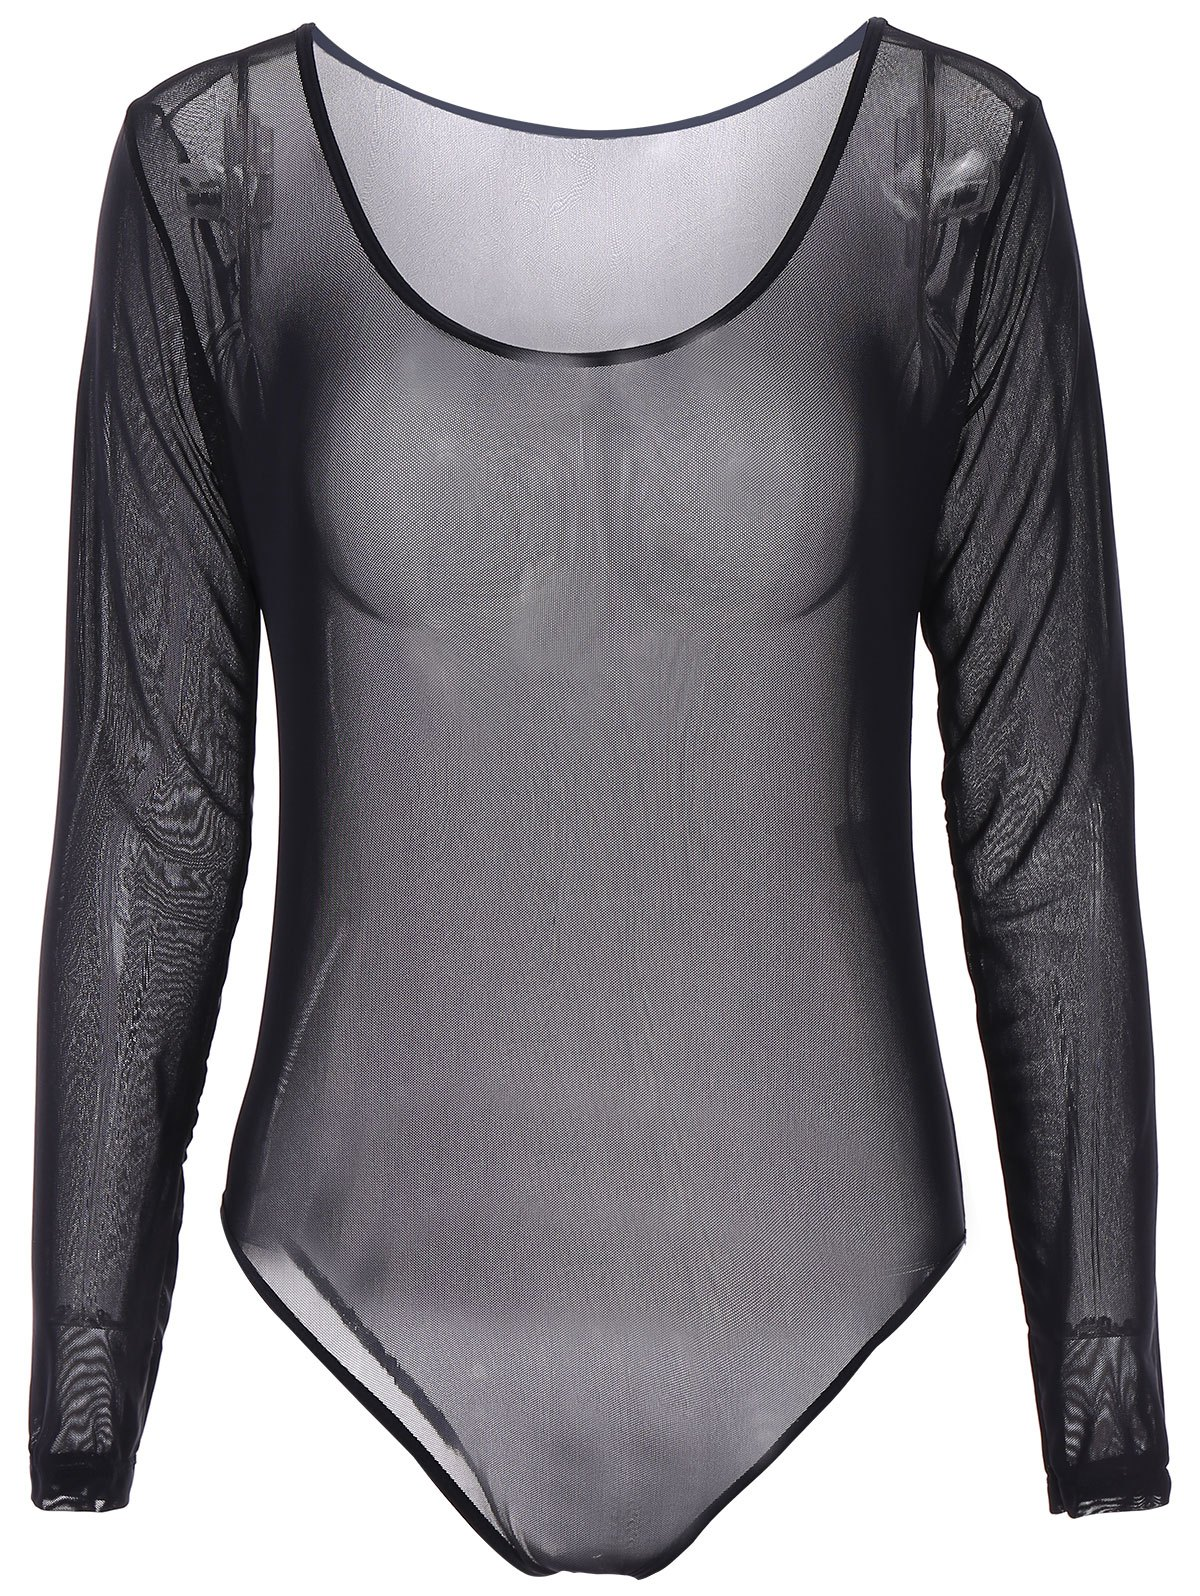 Alluring Scoop Neck Long Sleeve See-Through Solid Color Womens Black TeddyWomen<br><br><br>Size: S<br>Color: BLACK